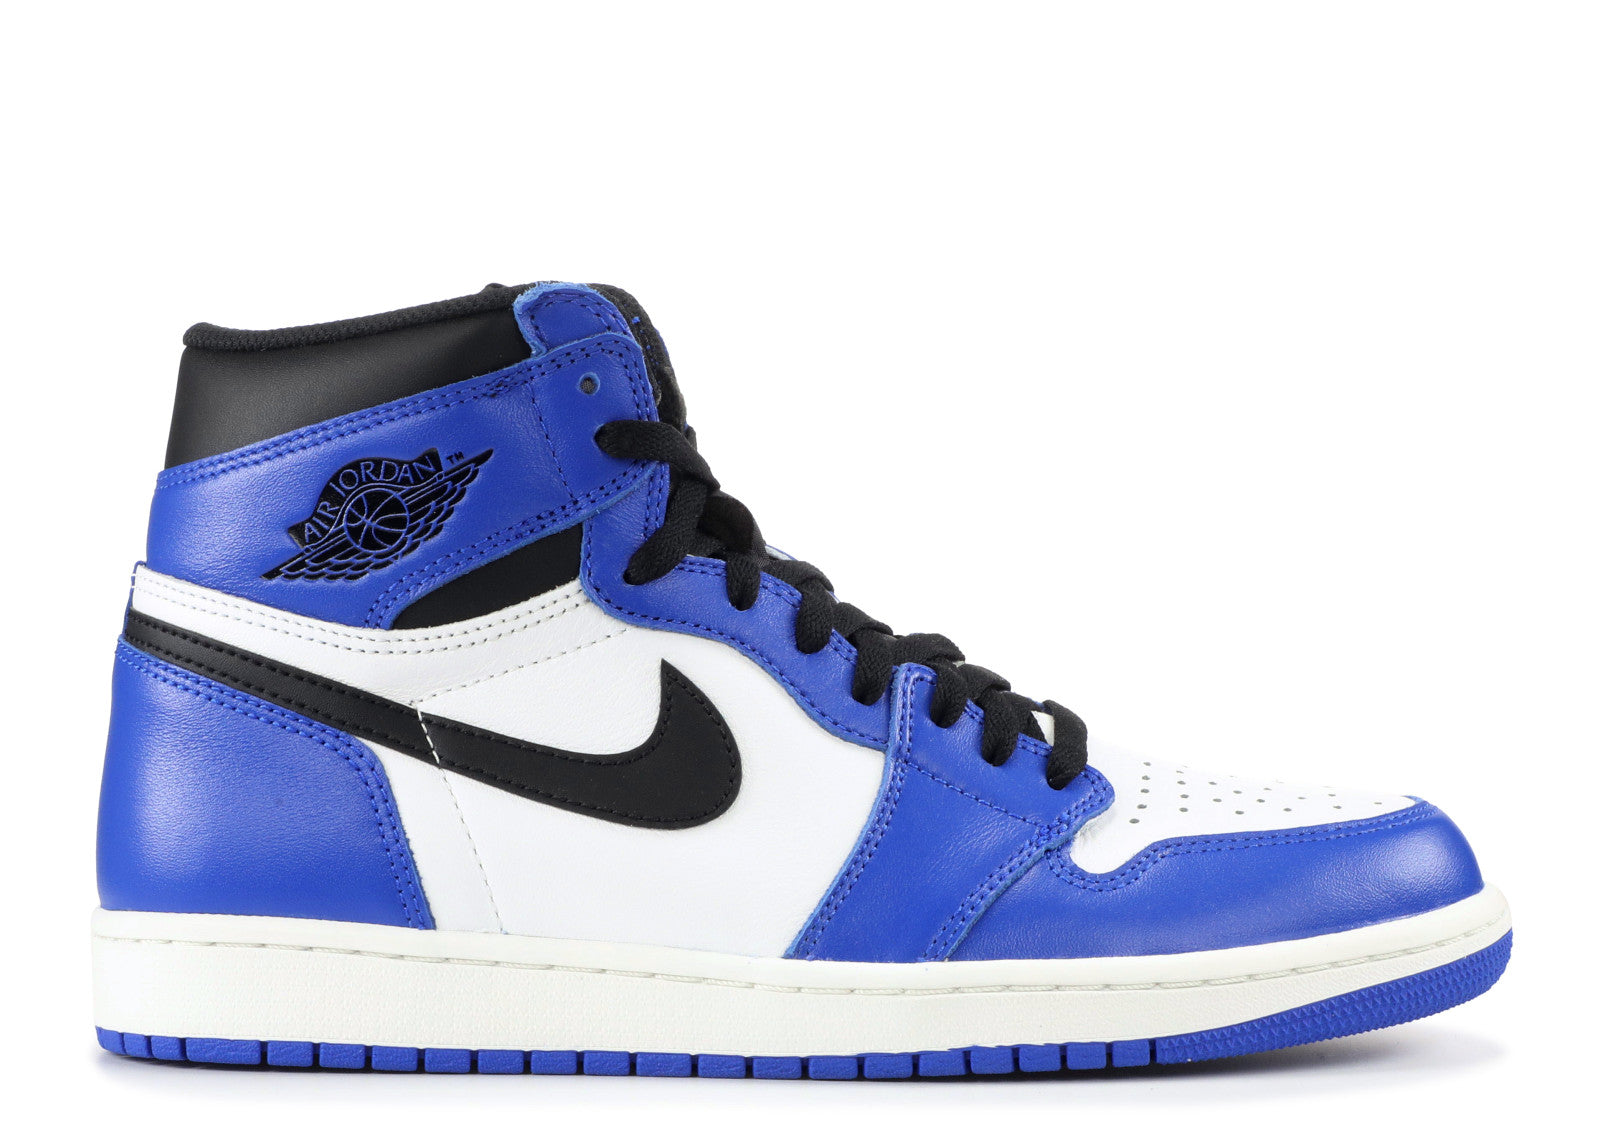 499e3a4bd17 Air Jordan 1 Retro High OG 'Game Royal' - Sneakest